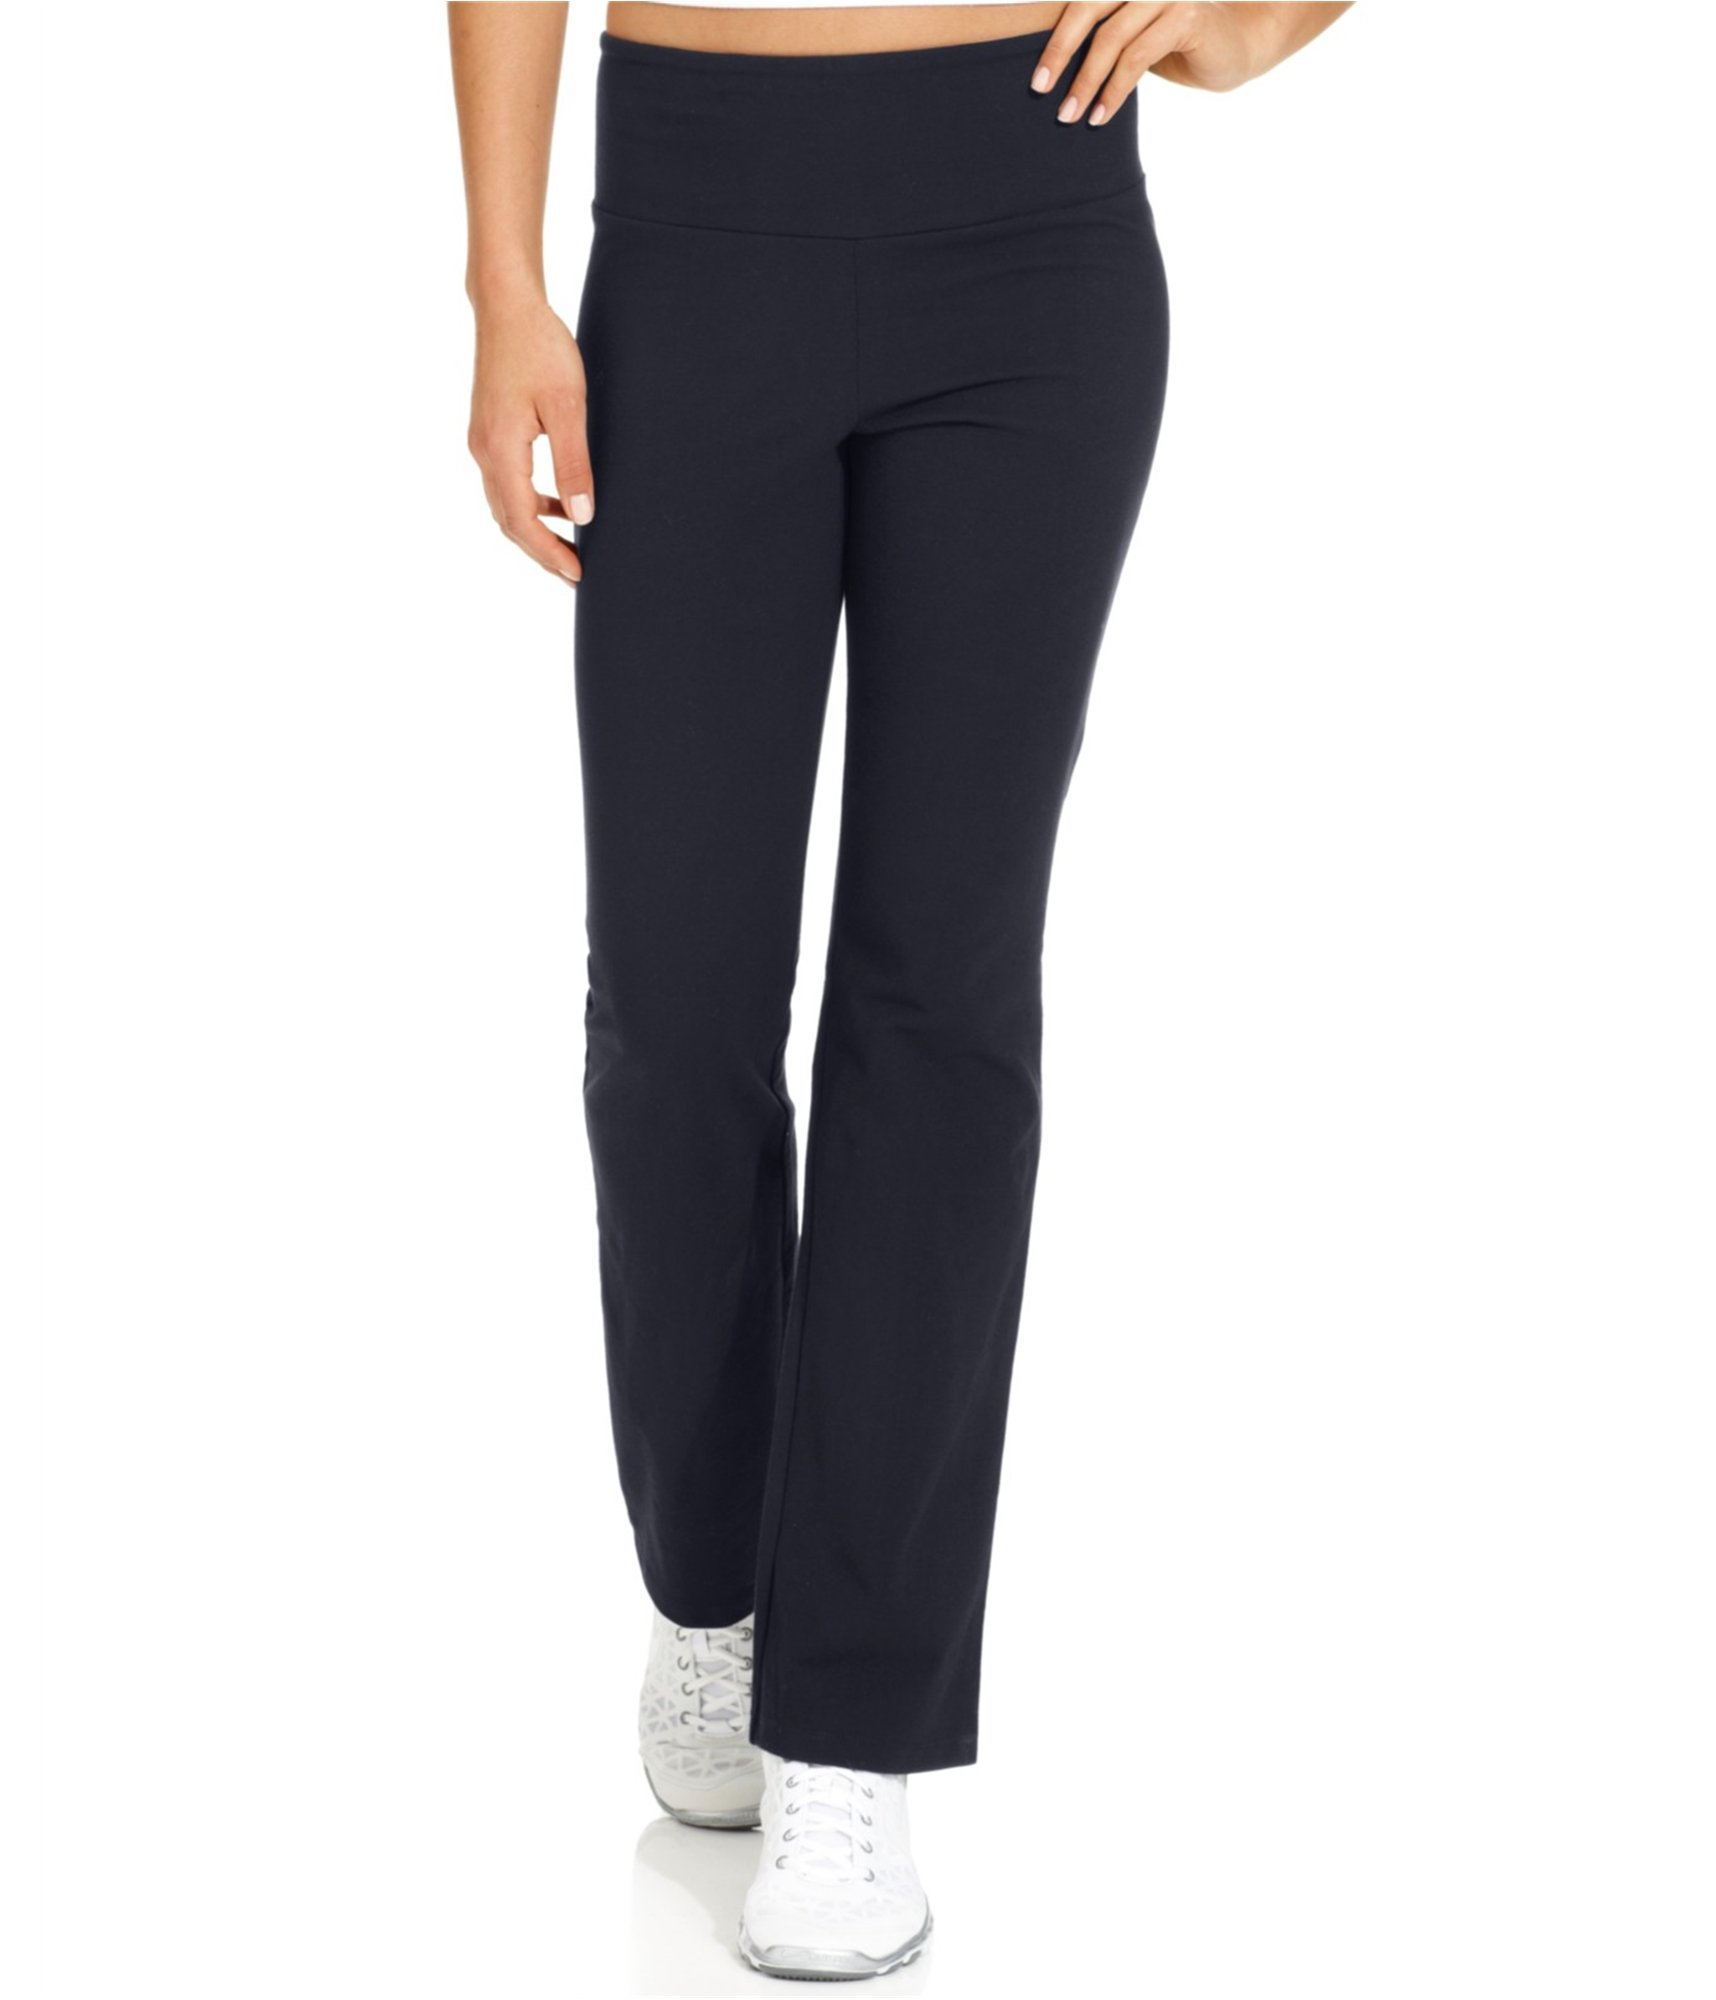 Style & Co.. Womens Tommy-Control Yoga Pants Blue 2XL/29 by Style & Co. (Image #1)